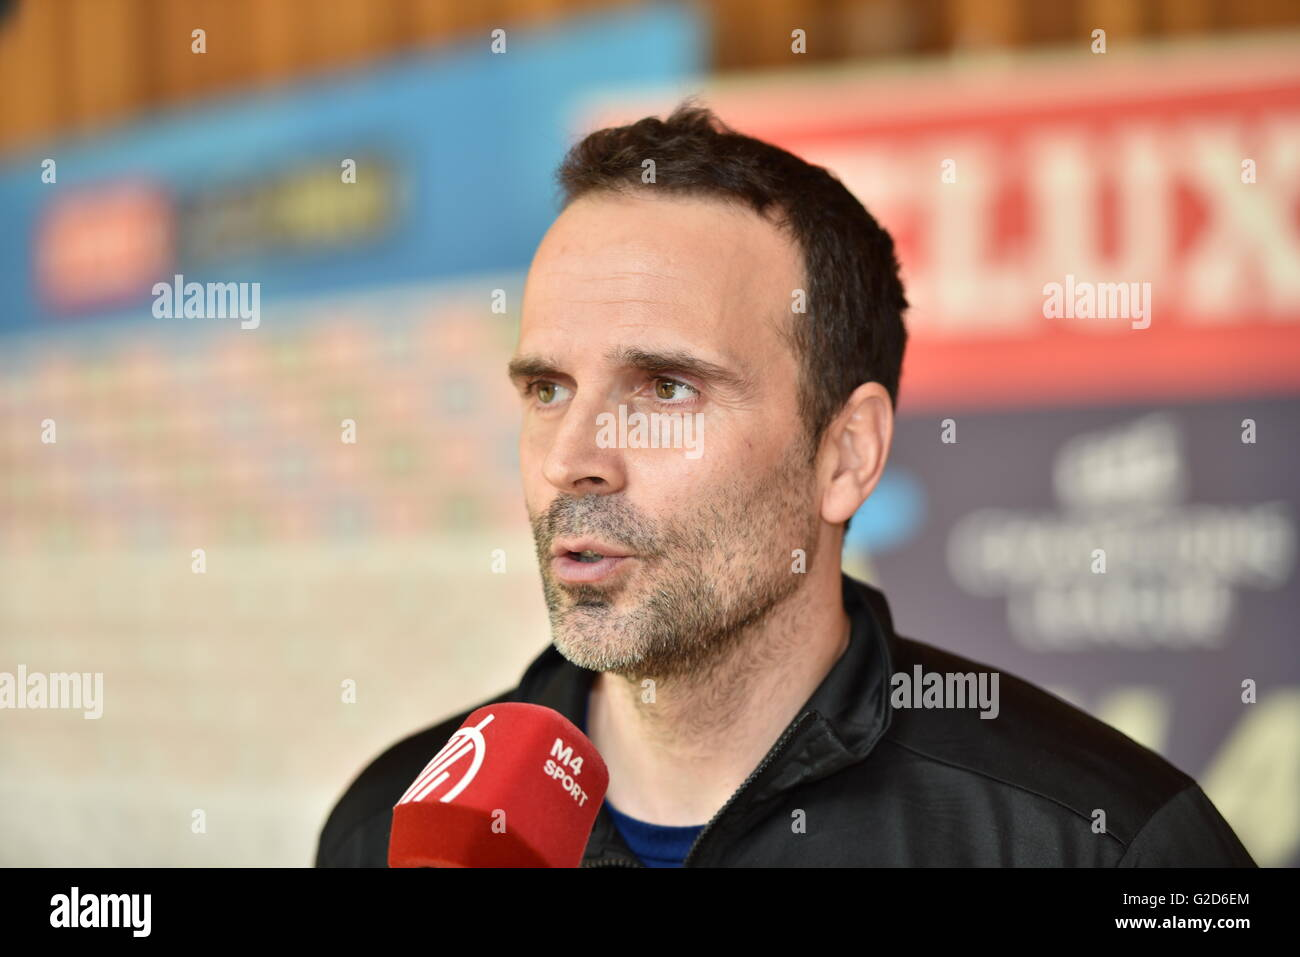 hungarian league team stock photos hungarian league team stock handball coach xavi sabate from the hungarian handball club mvm veszprem at the media call for